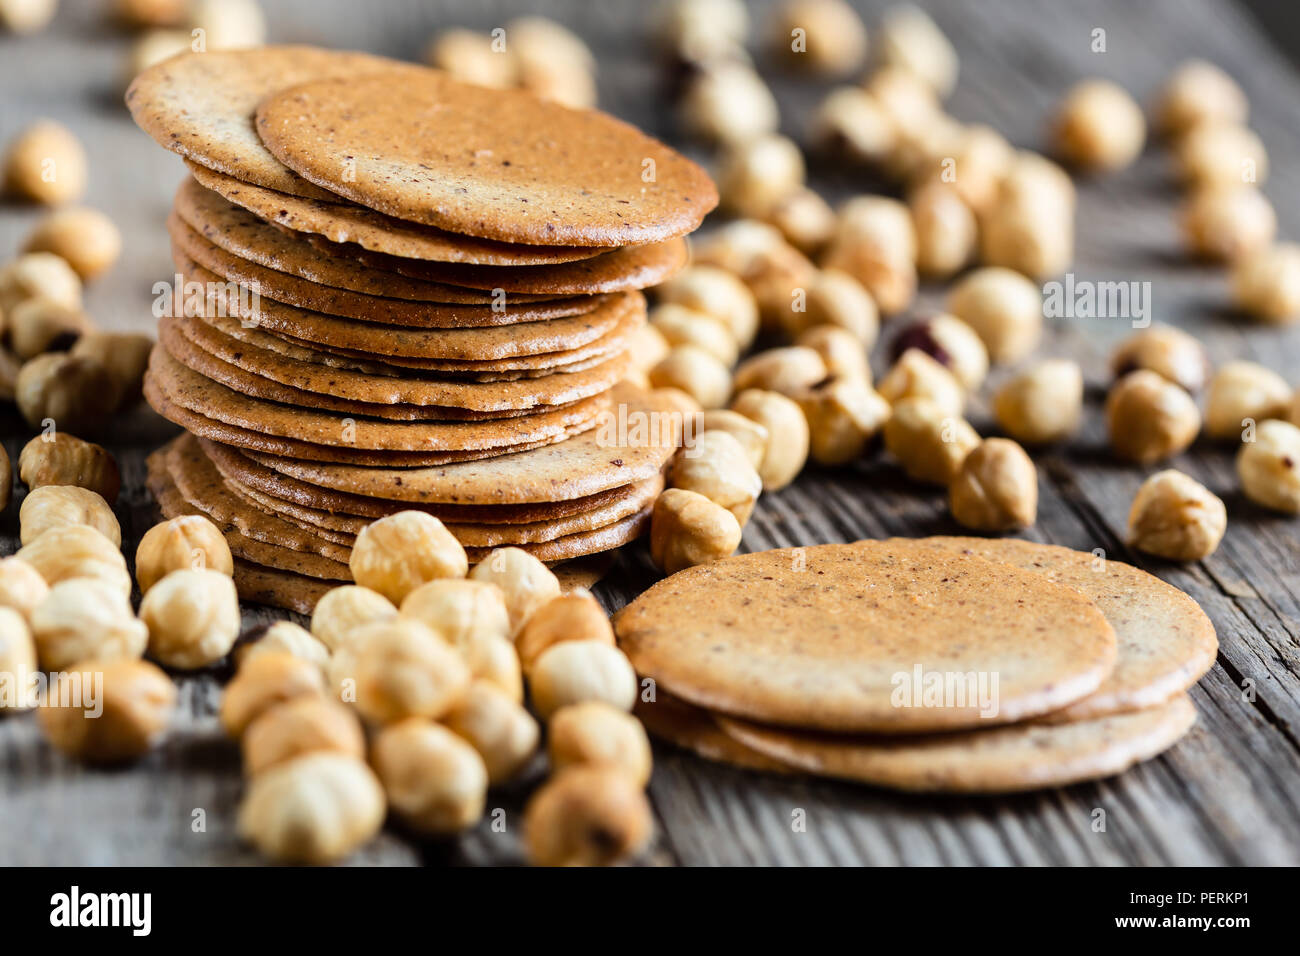 Tegole, Traditional biscuits from Italy's Aosta Valley - Stock Image